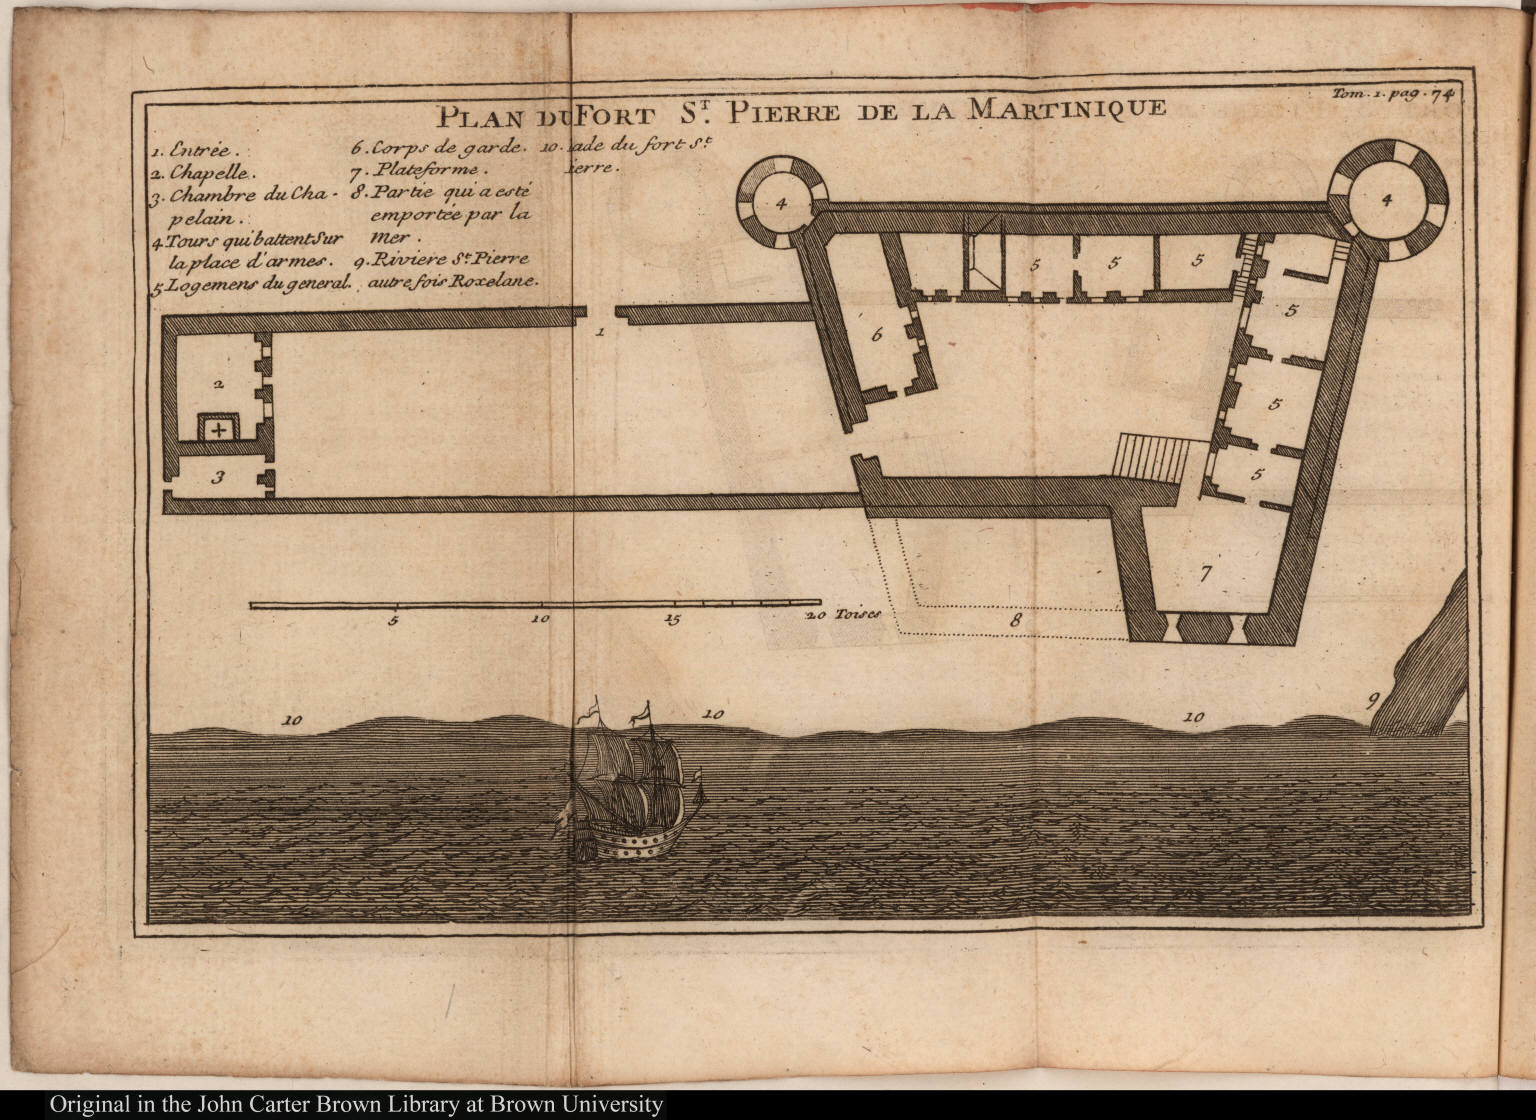 Pierre De Plan Plan Du Fort St Pierre De La Martinique Jcb Archive Of Early